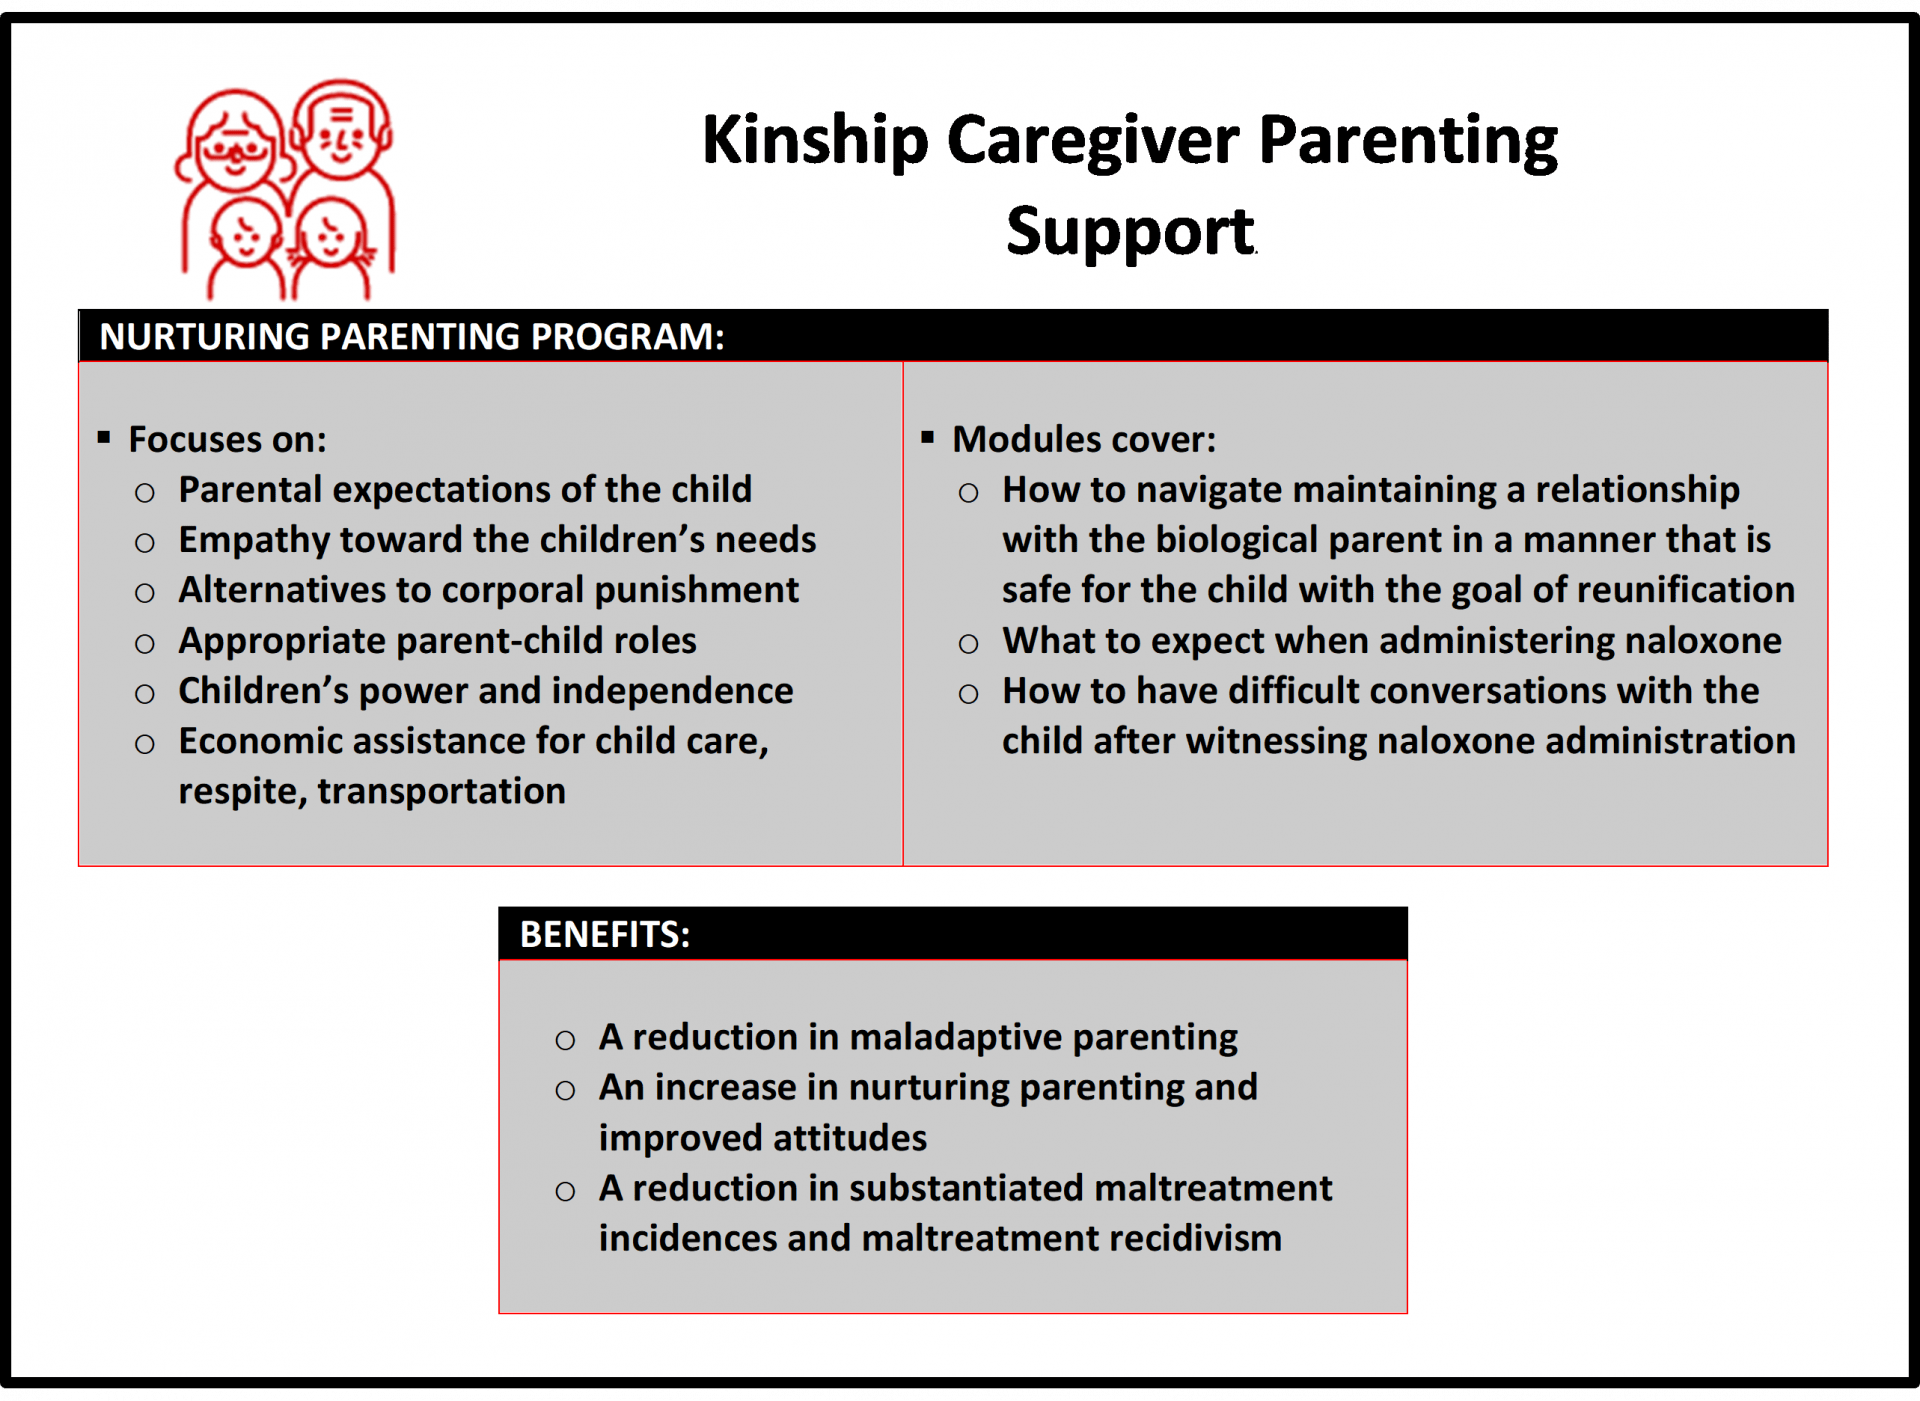 Primary caregiver parenting support